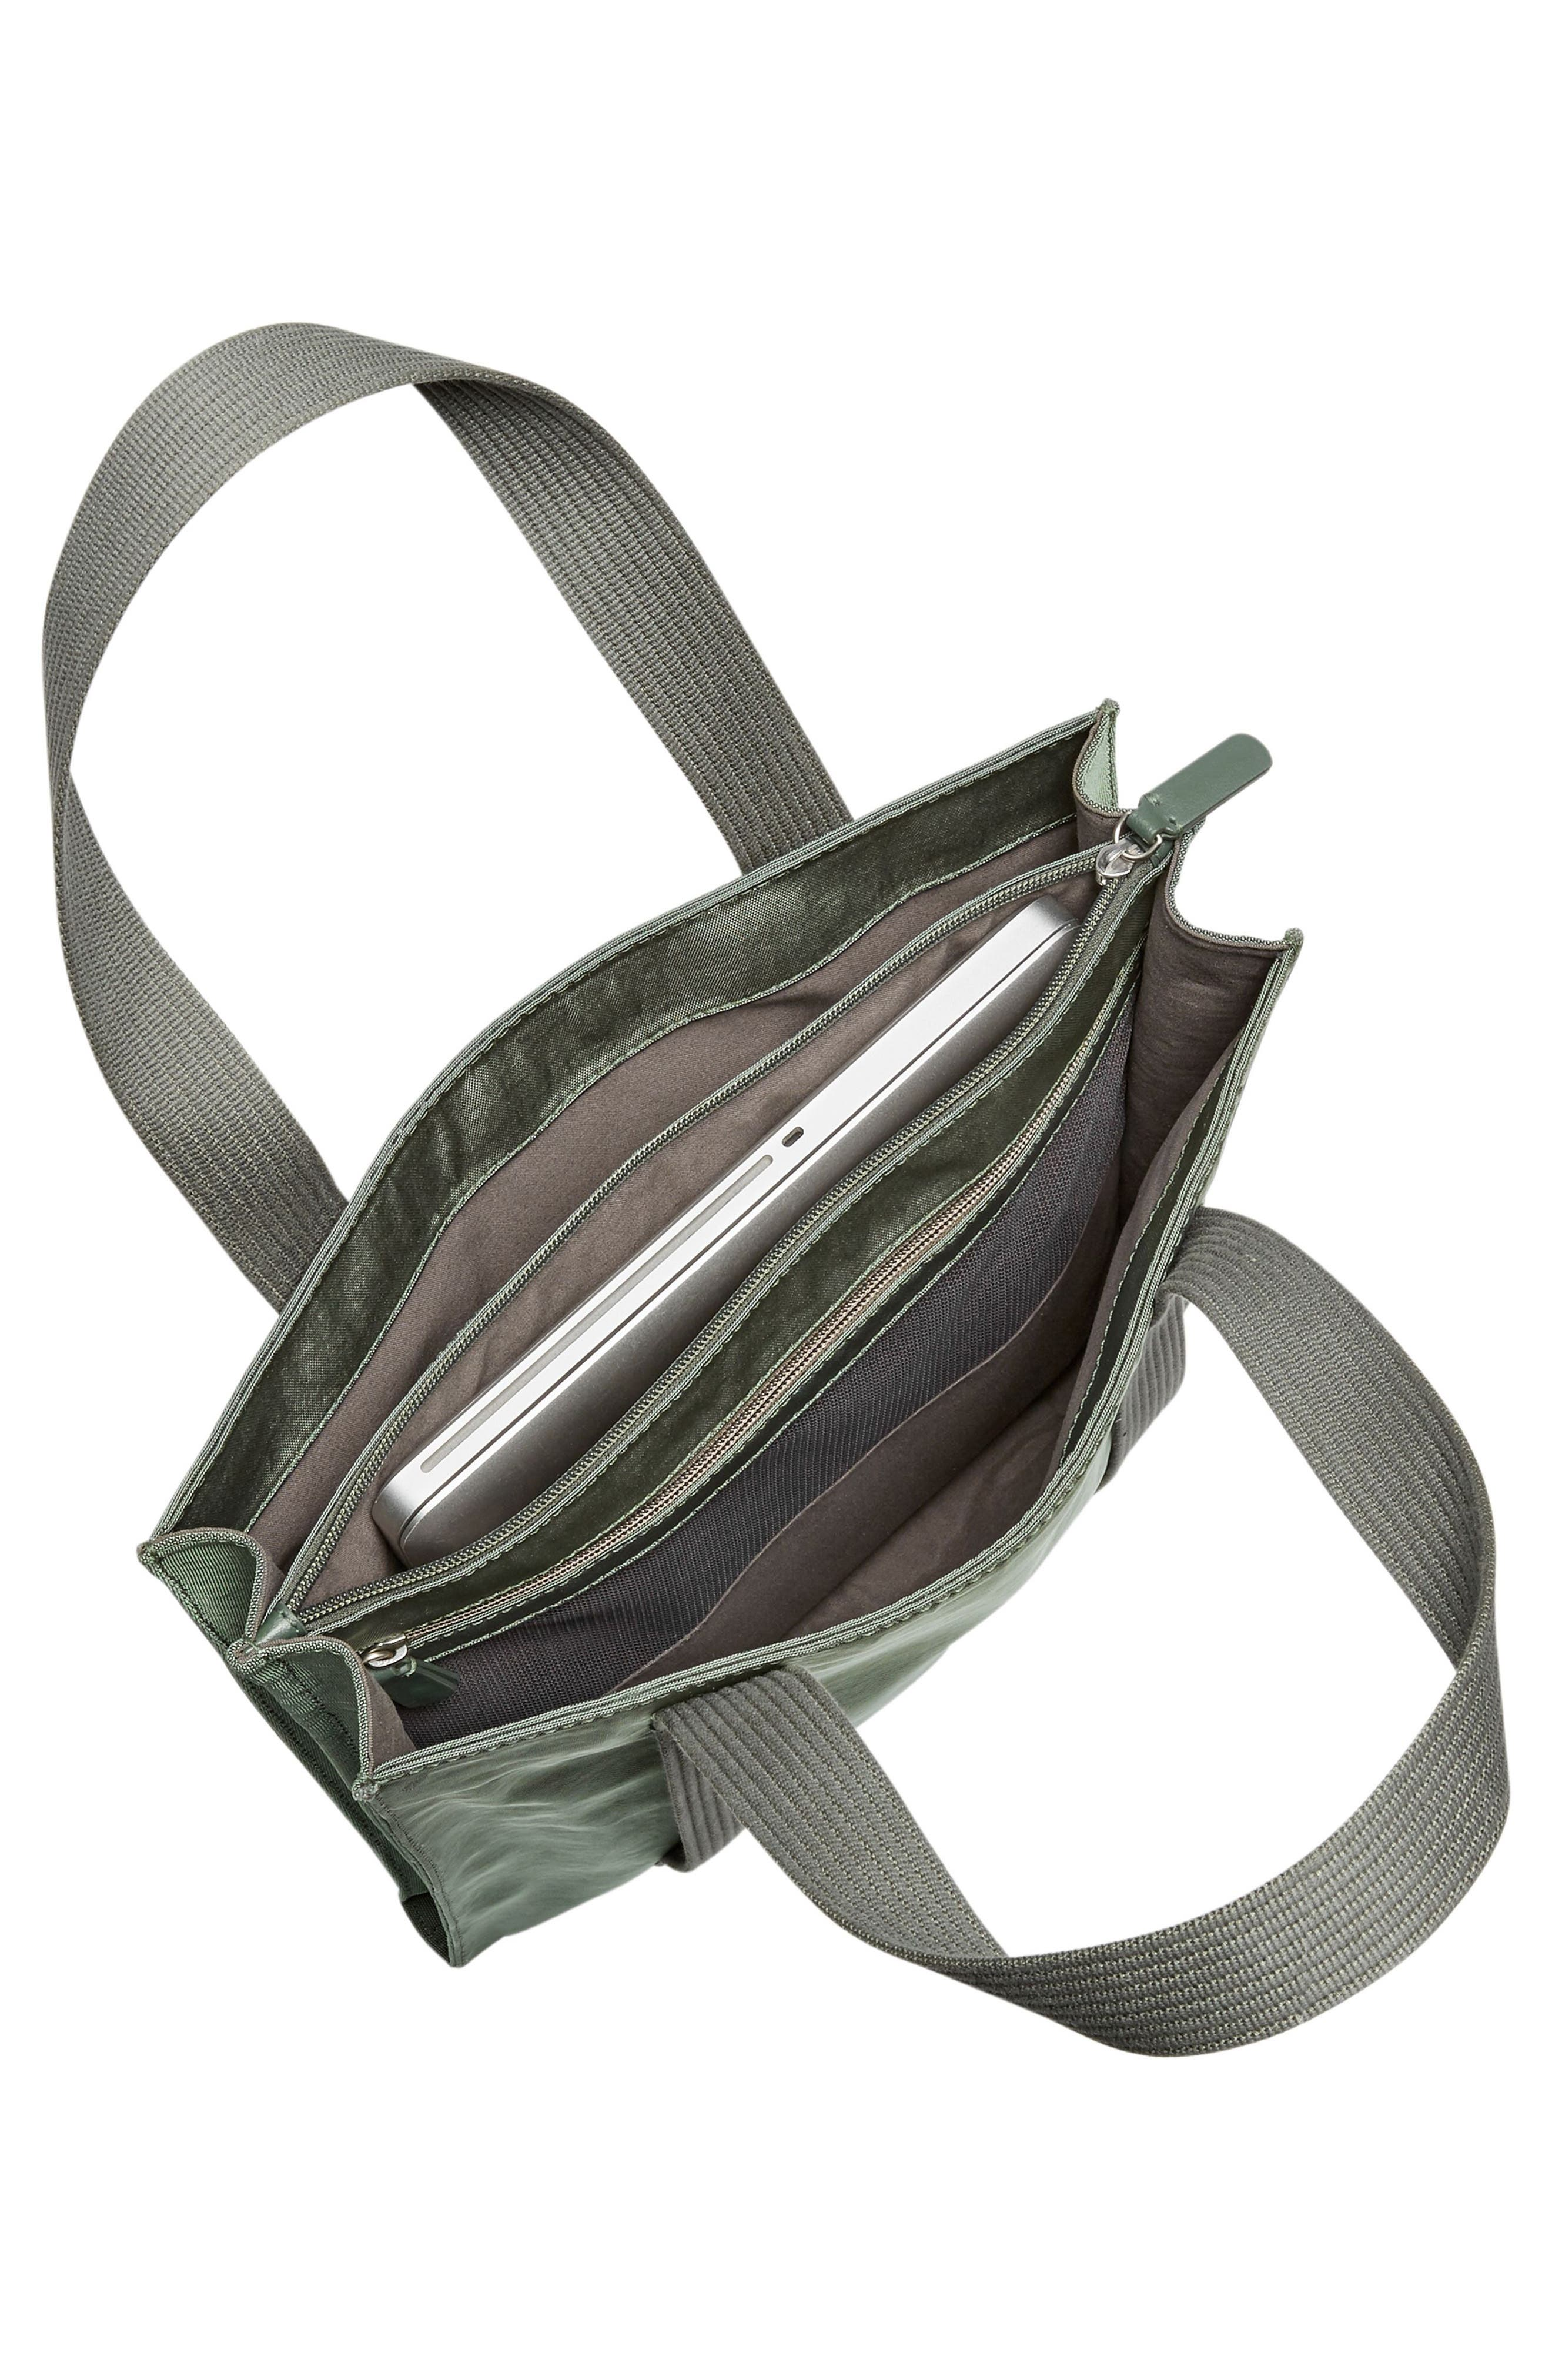 Thomsen Travel Tote Bag,                             Alternate thumbnail 3, color,                             Agave